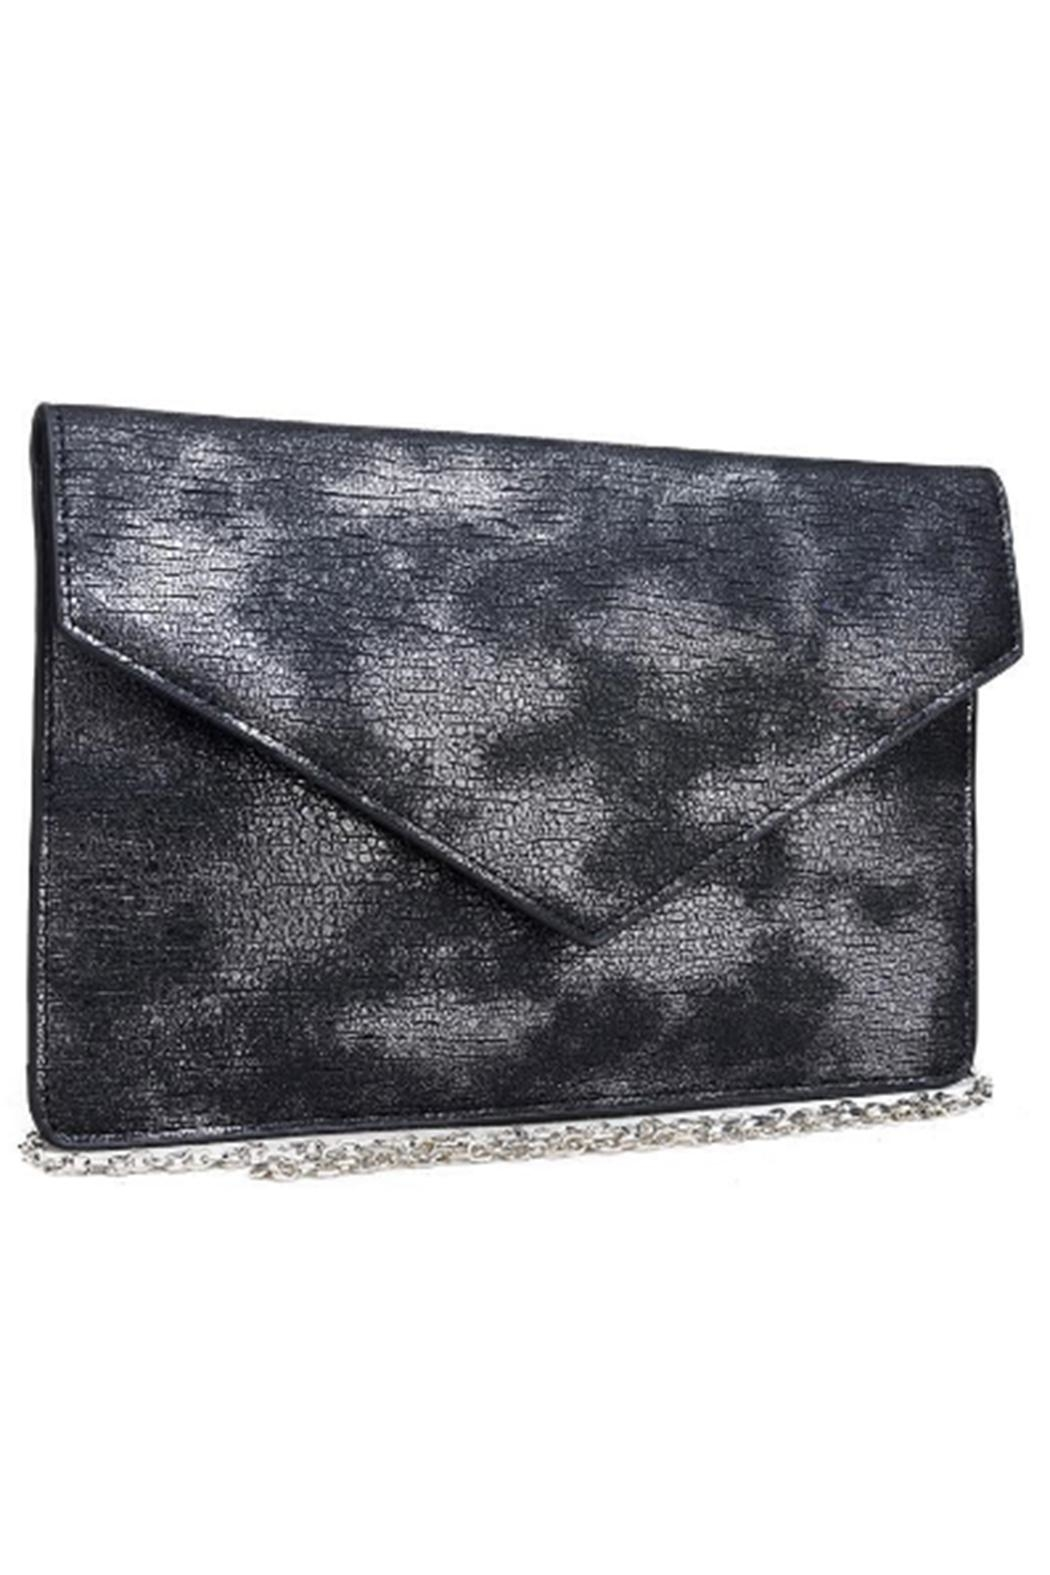 Urban Expressions Diva Metallic Clutch - Side Cropped Image